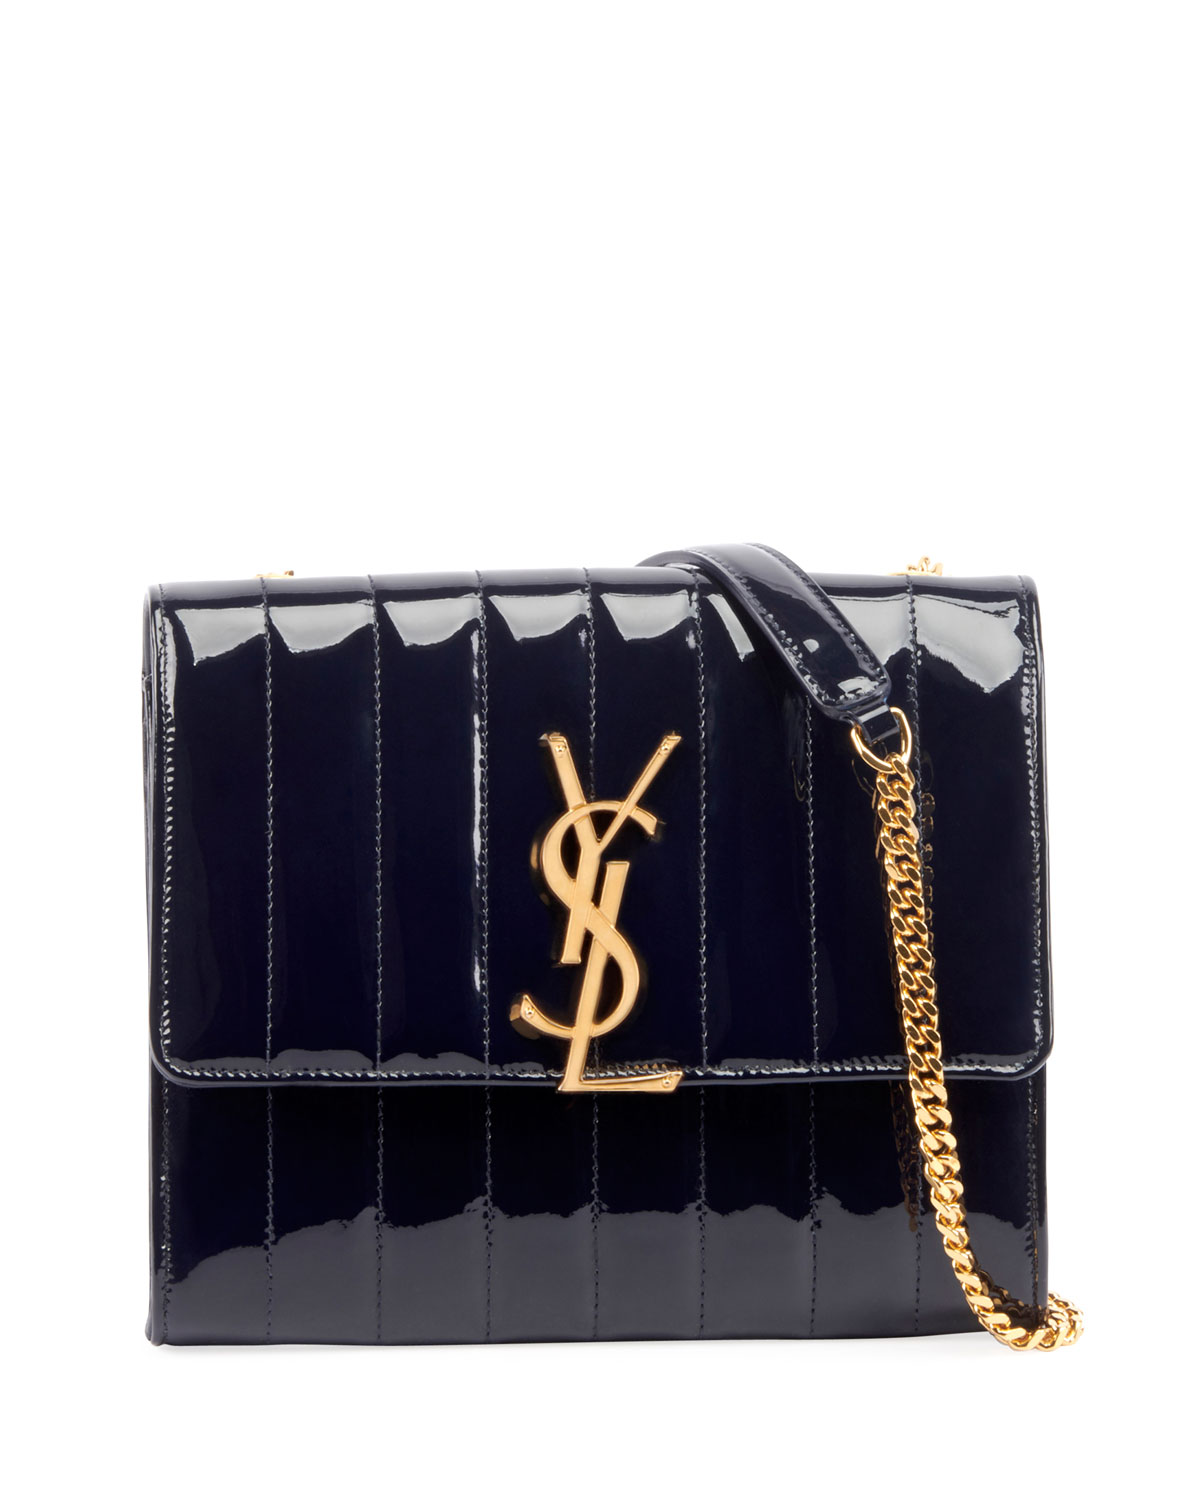 83a0921e35870 Saint LaurentVicky Monogram YSL North South Quilted Patent Wallet on Chain